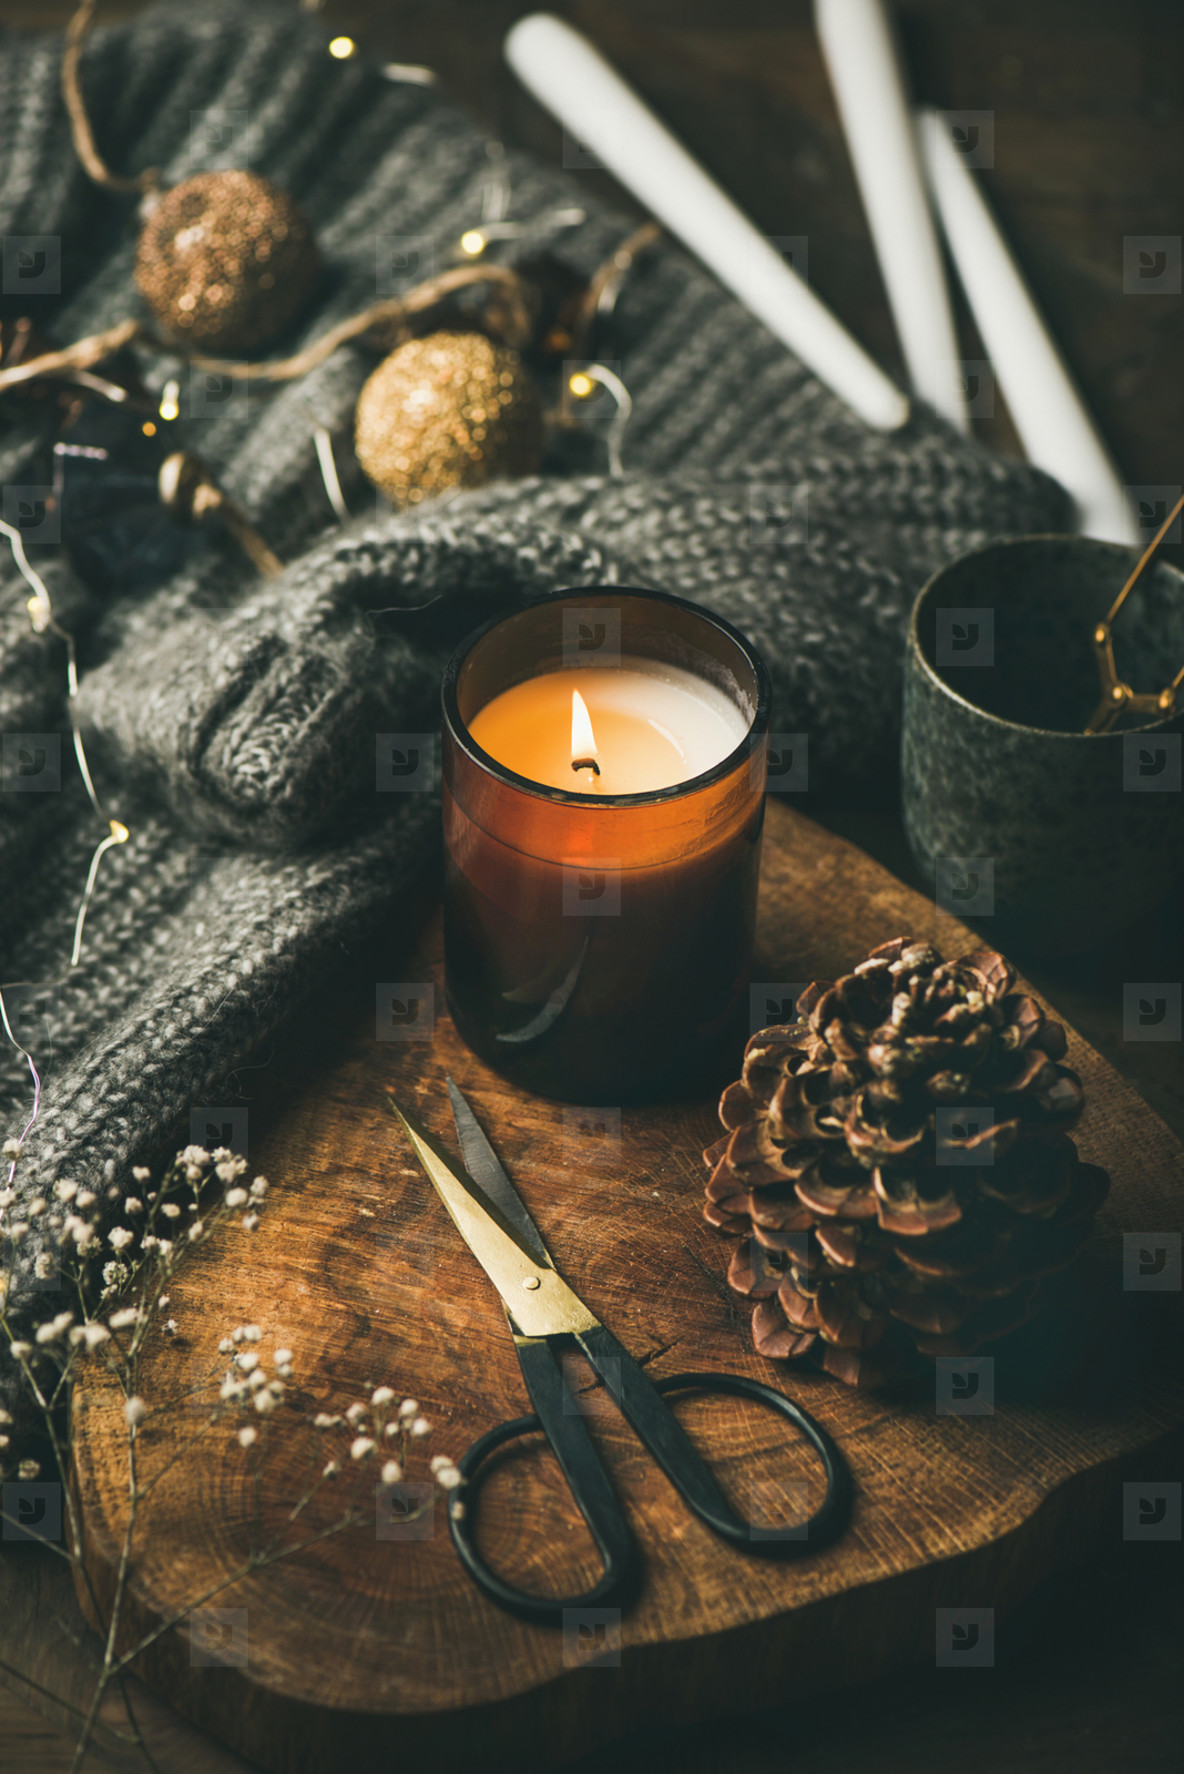 Candle on wooden board  woolen sweater and decoration toys